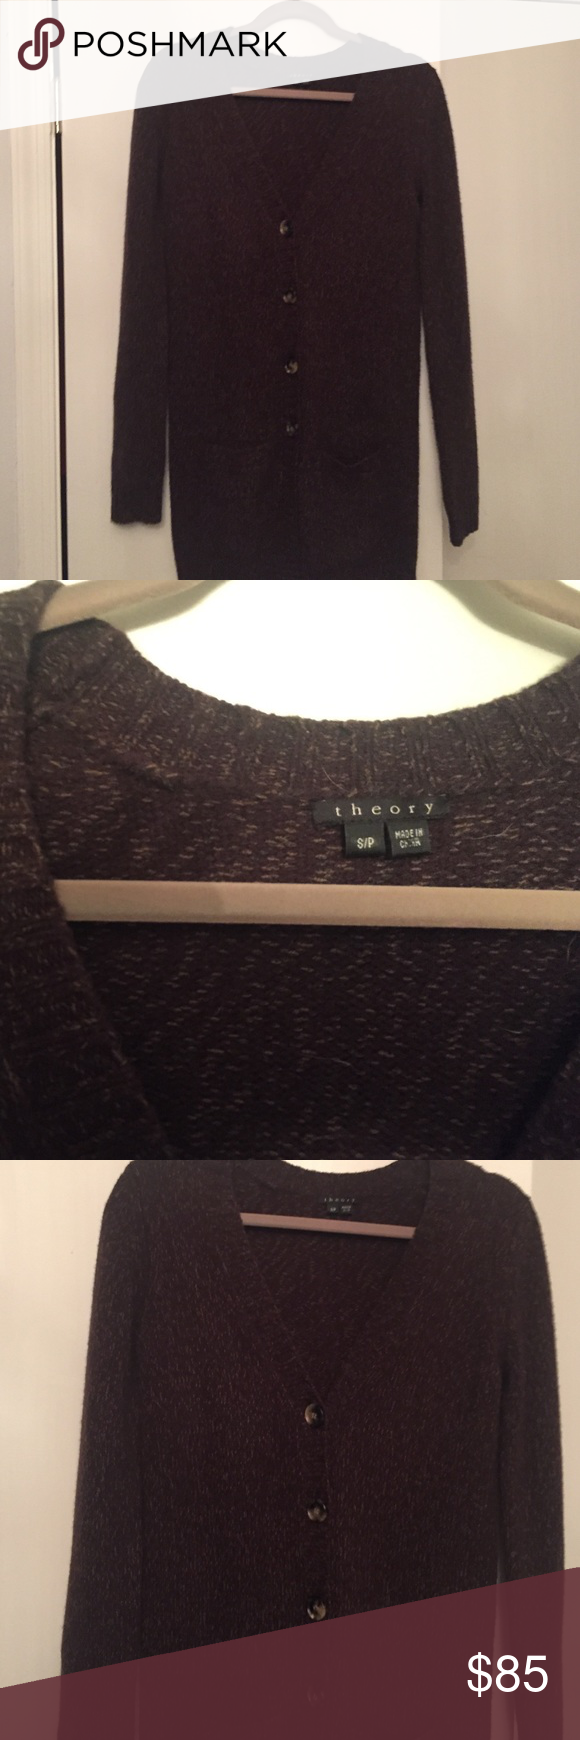 Theory Cashmere sweater Brown 3/4 cashmere wool blend. Soft and ...